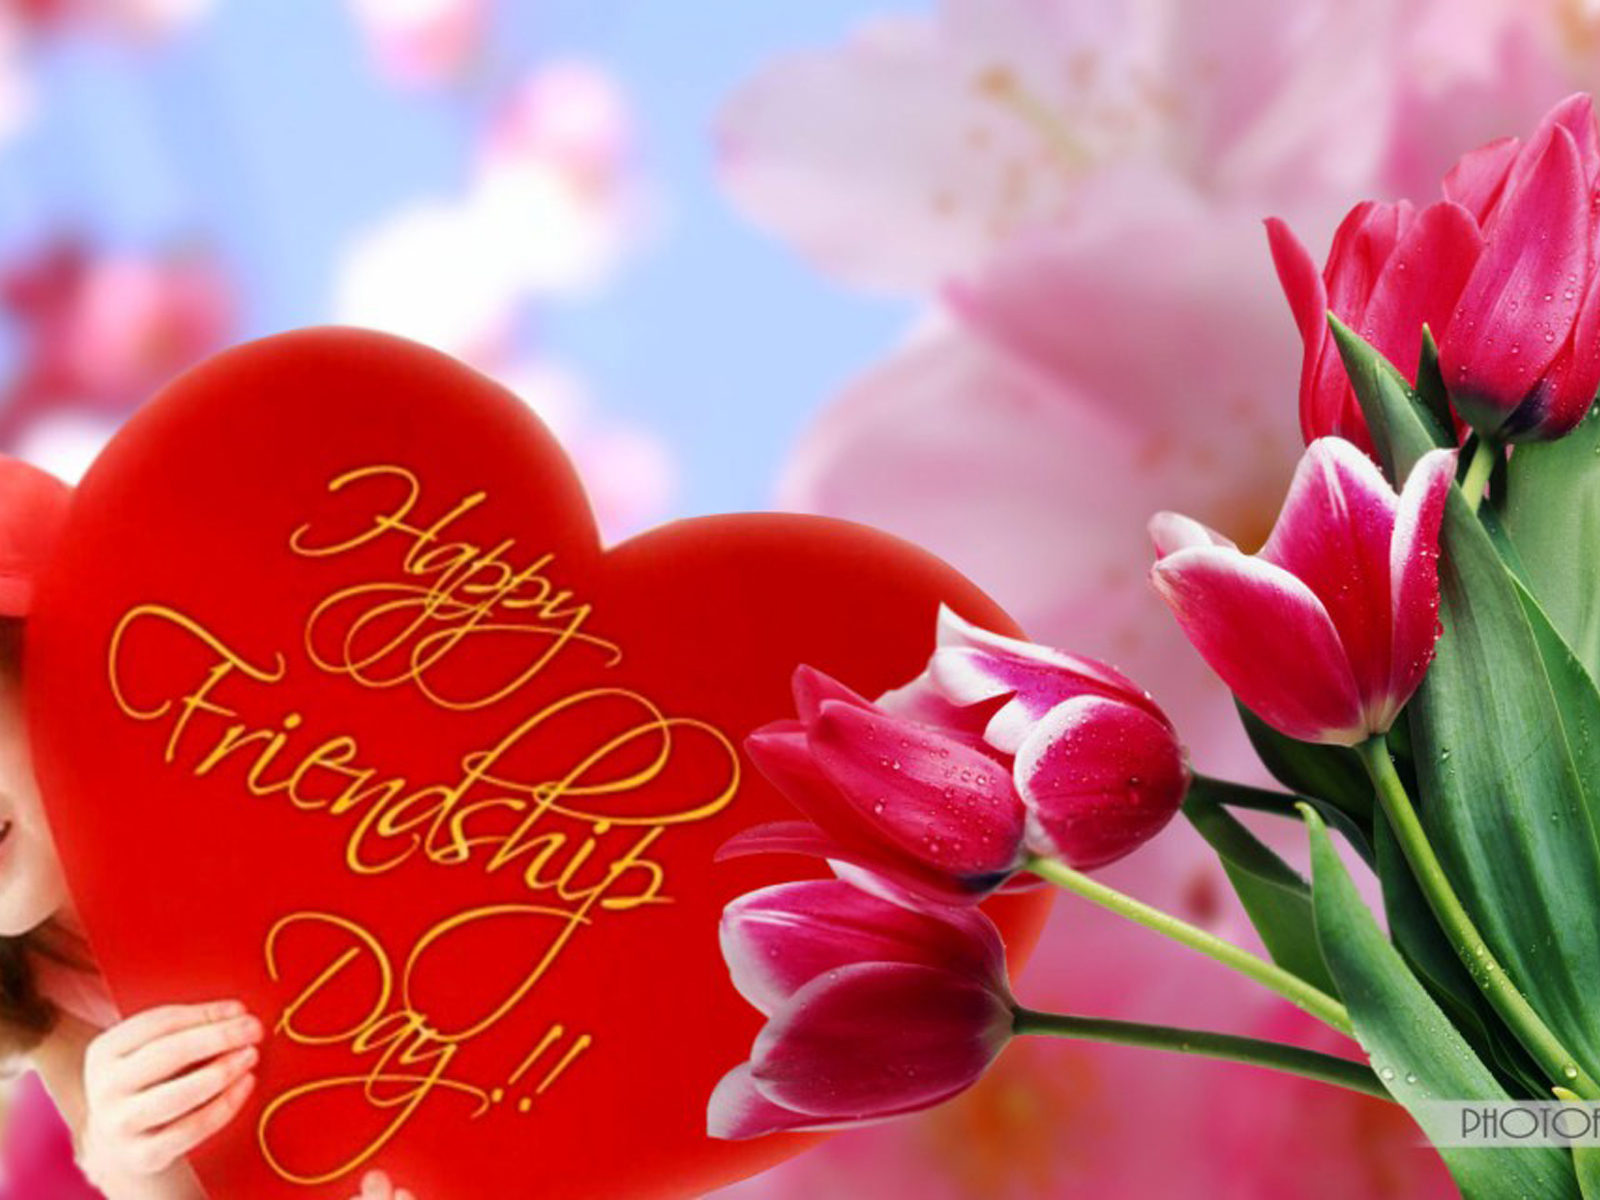 Girl Kiss Girl Wallpapers Love Friendship Day Wallpaper Picture With Quote 2560x1600